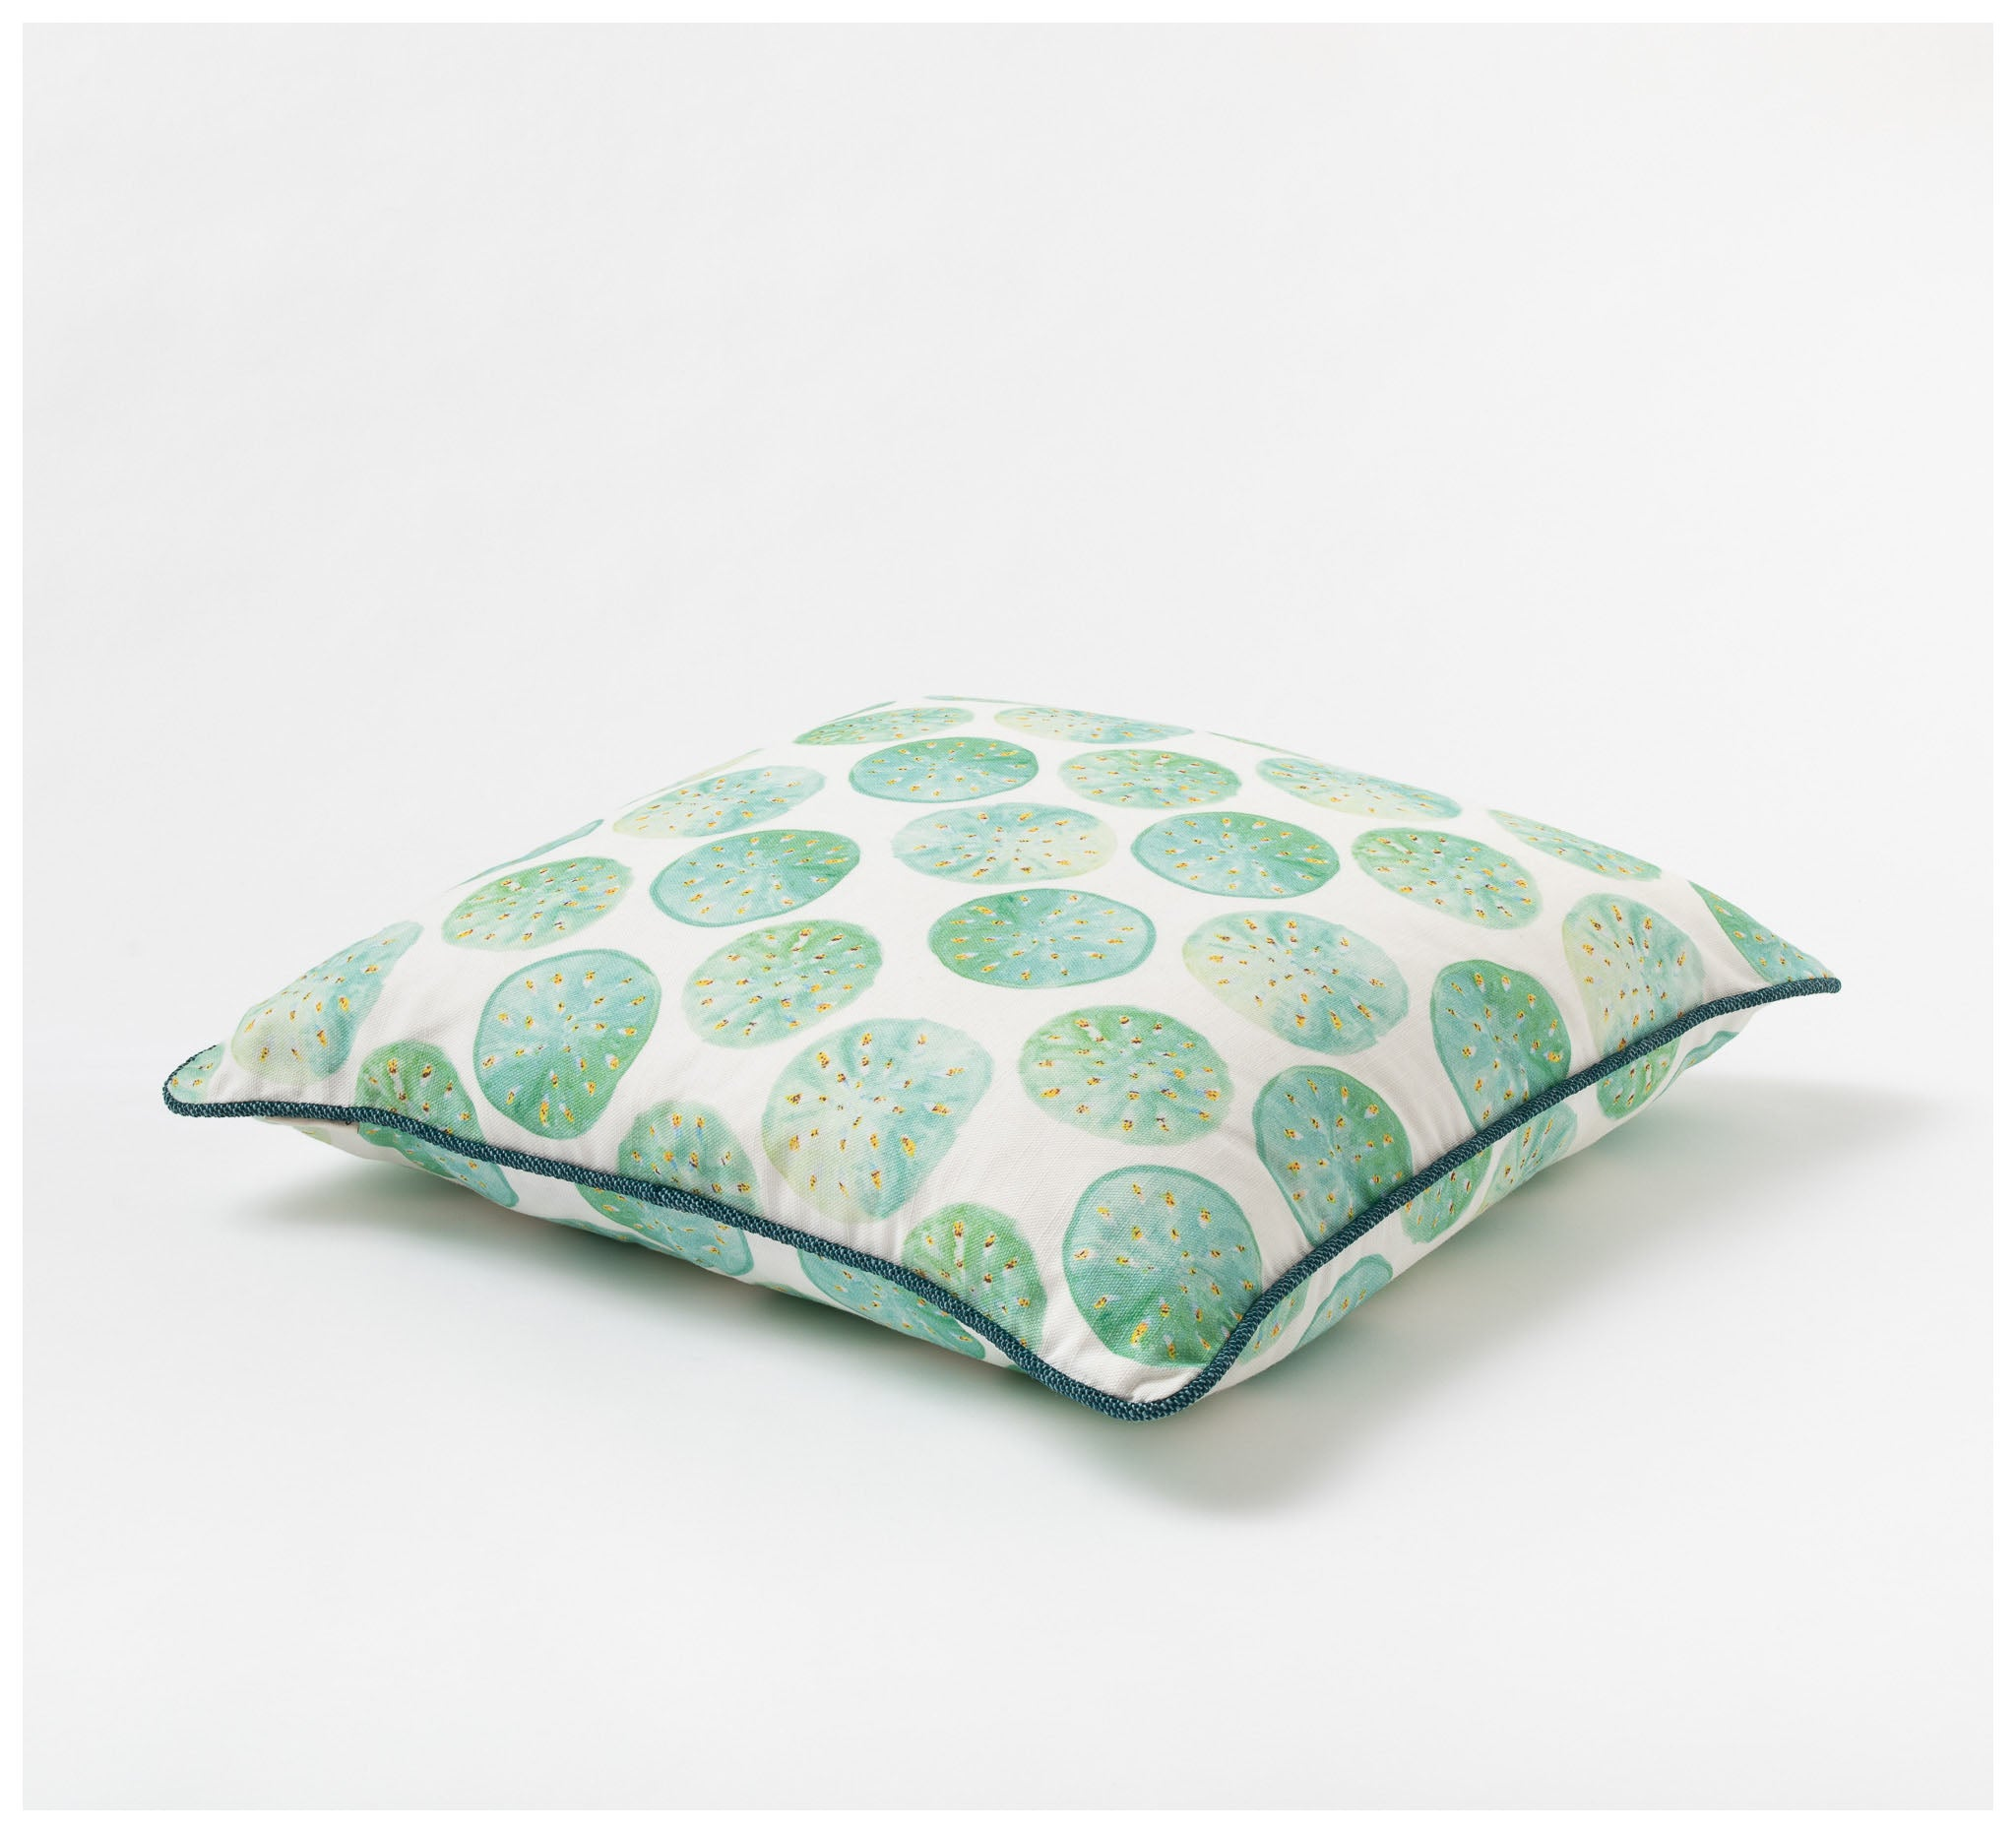 Studio Onethirty - Demi Cushion